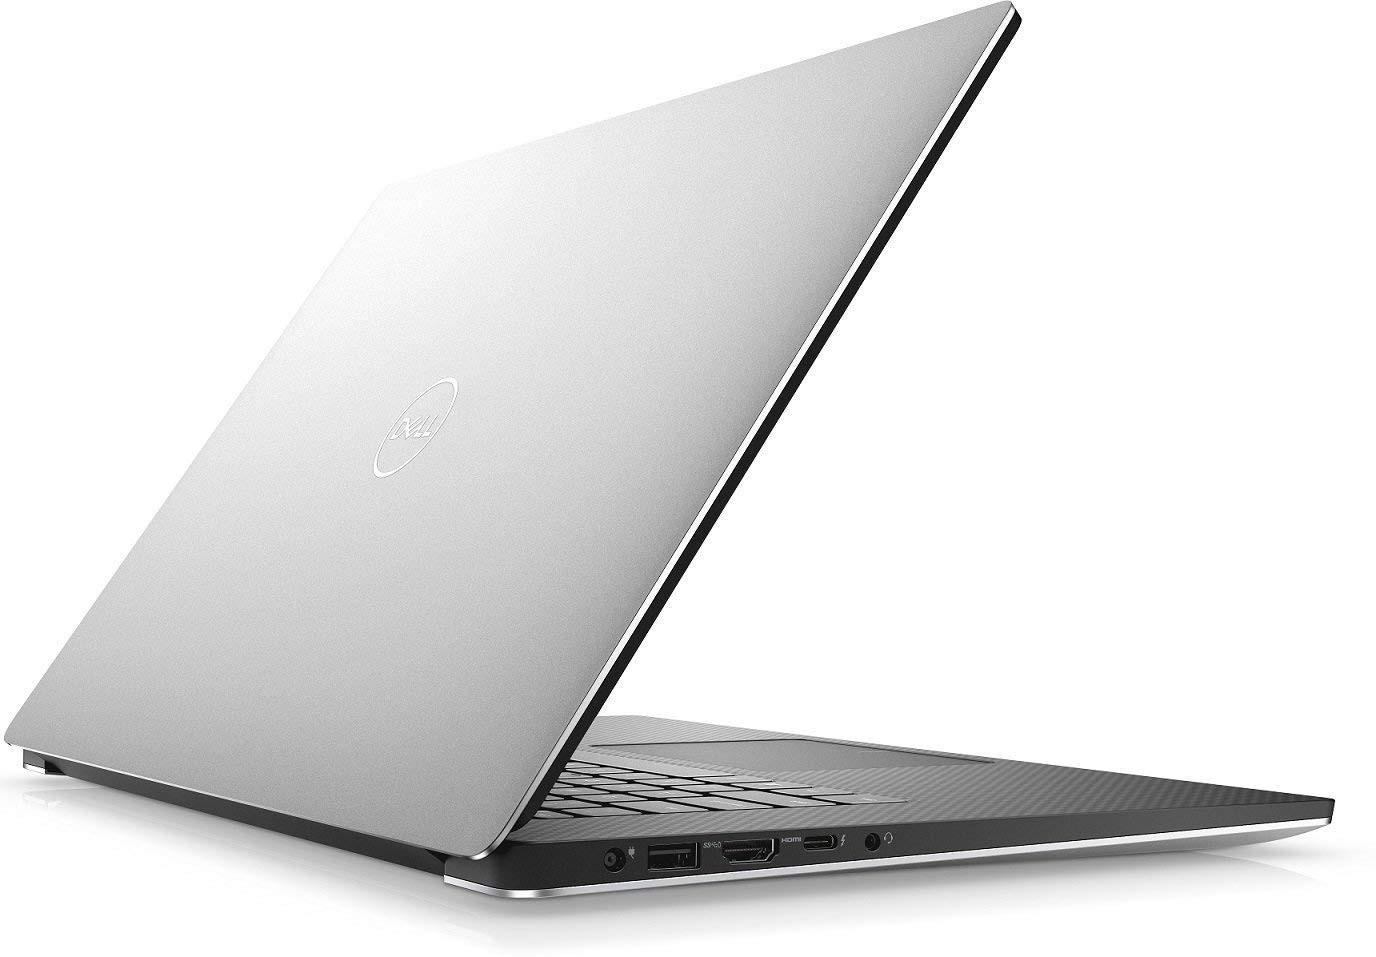 "2018 Dell XPS 9570 Laptop, 15.6"" UHD (3840 x 2160) InfinityEdge Touch Display, 8th Gen Intel Core i7-8750H, 32GB RAM, 1TB SSD, GeForce GTX 1050Ti, Fingerprint Reader, Windows 10 Pro, Silver"